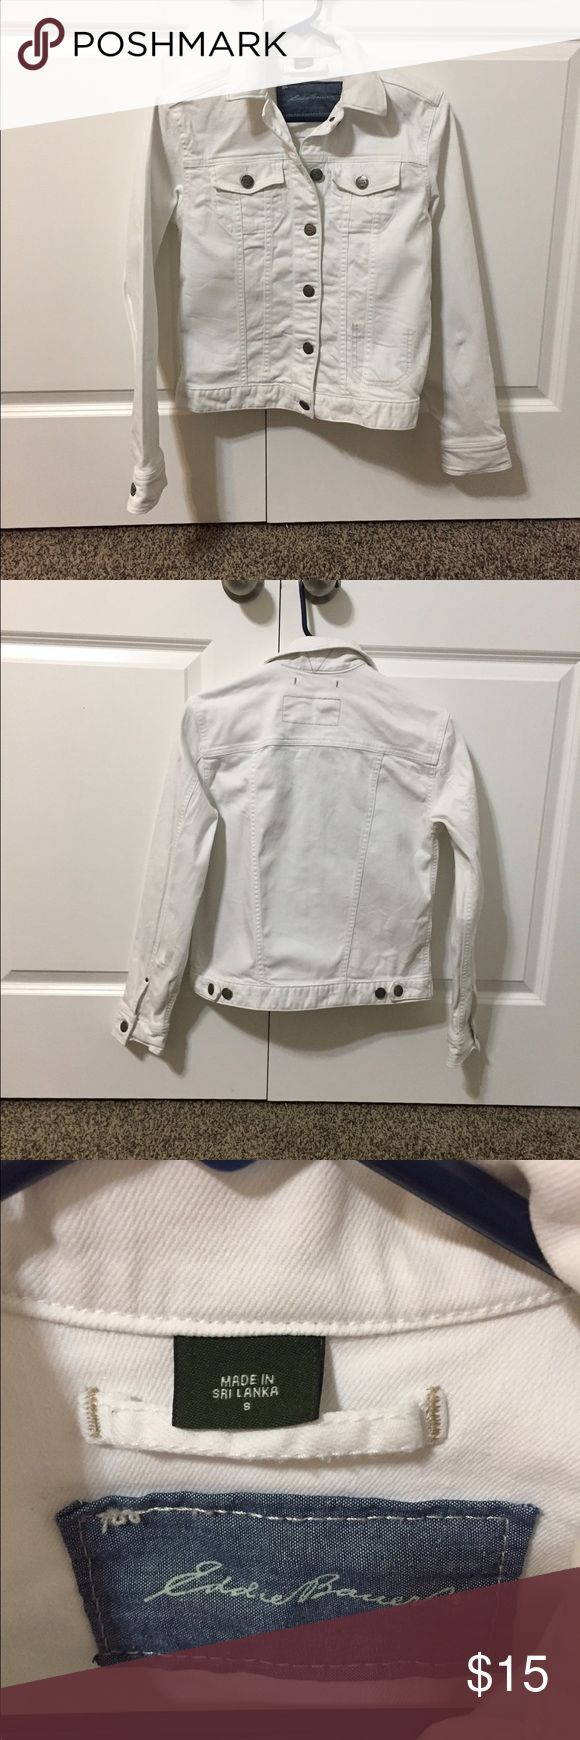 White Jean Jacket This white jean jacket is perfect for spring. It is very cute. I would keep it but I need to wear petite sizes. The jacket is in perfect condition. I only wore it once! Make me an offer! 😉 Eddie Bauer Jackets & Coats Jean Jackets